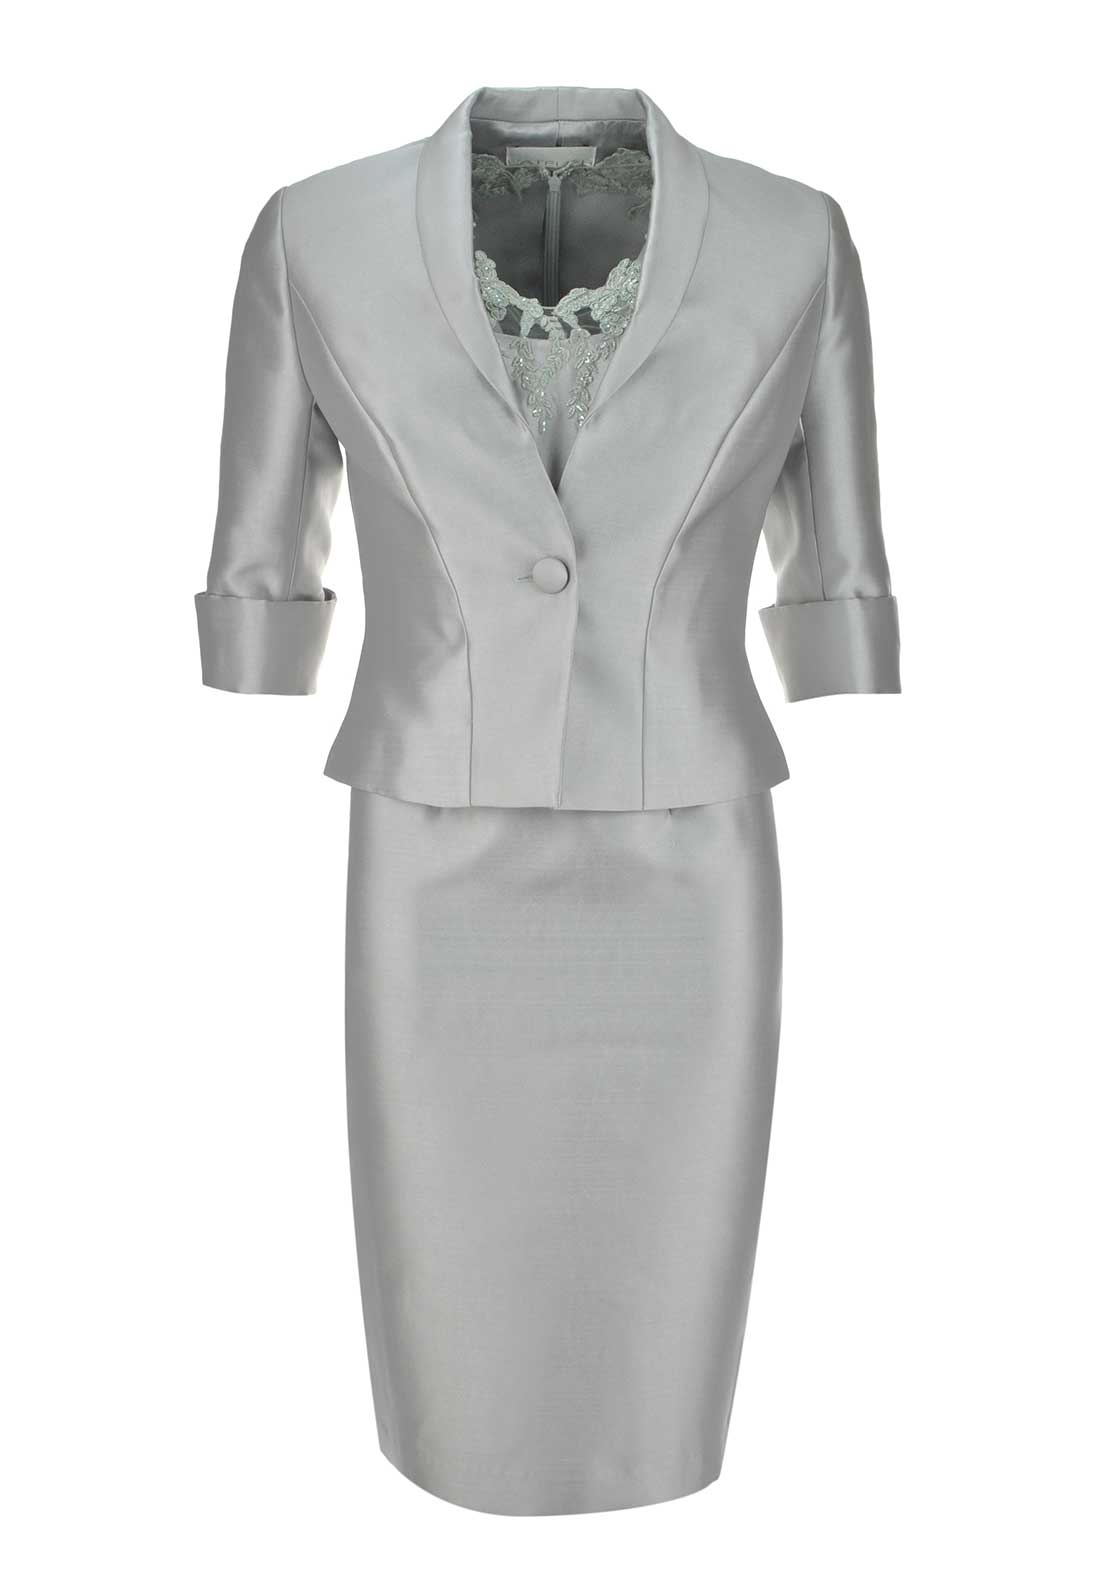 L'Atelier Occasion Wear Embellished Illusion Neckline Dress and Jacket, Silver